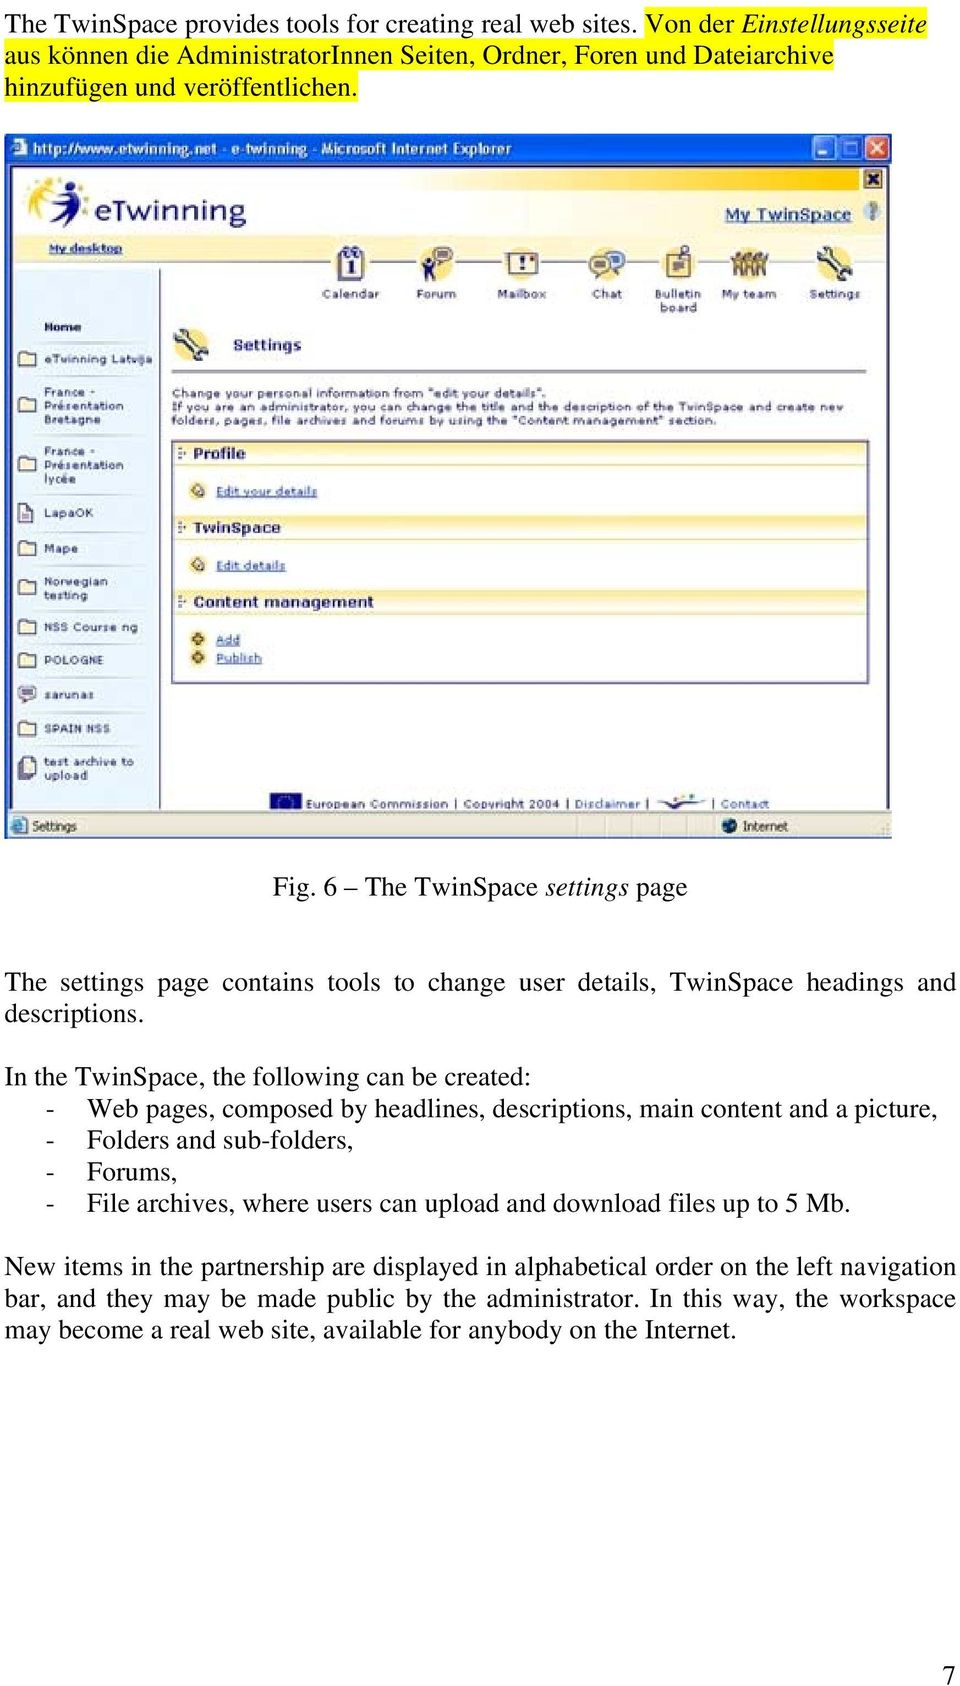 In the TwinSpace, the following can be created: - Web pages, composed by headlines, descriptions, main content and a picture, - Folders and sub-folders, - Forums, - File archives, where users can